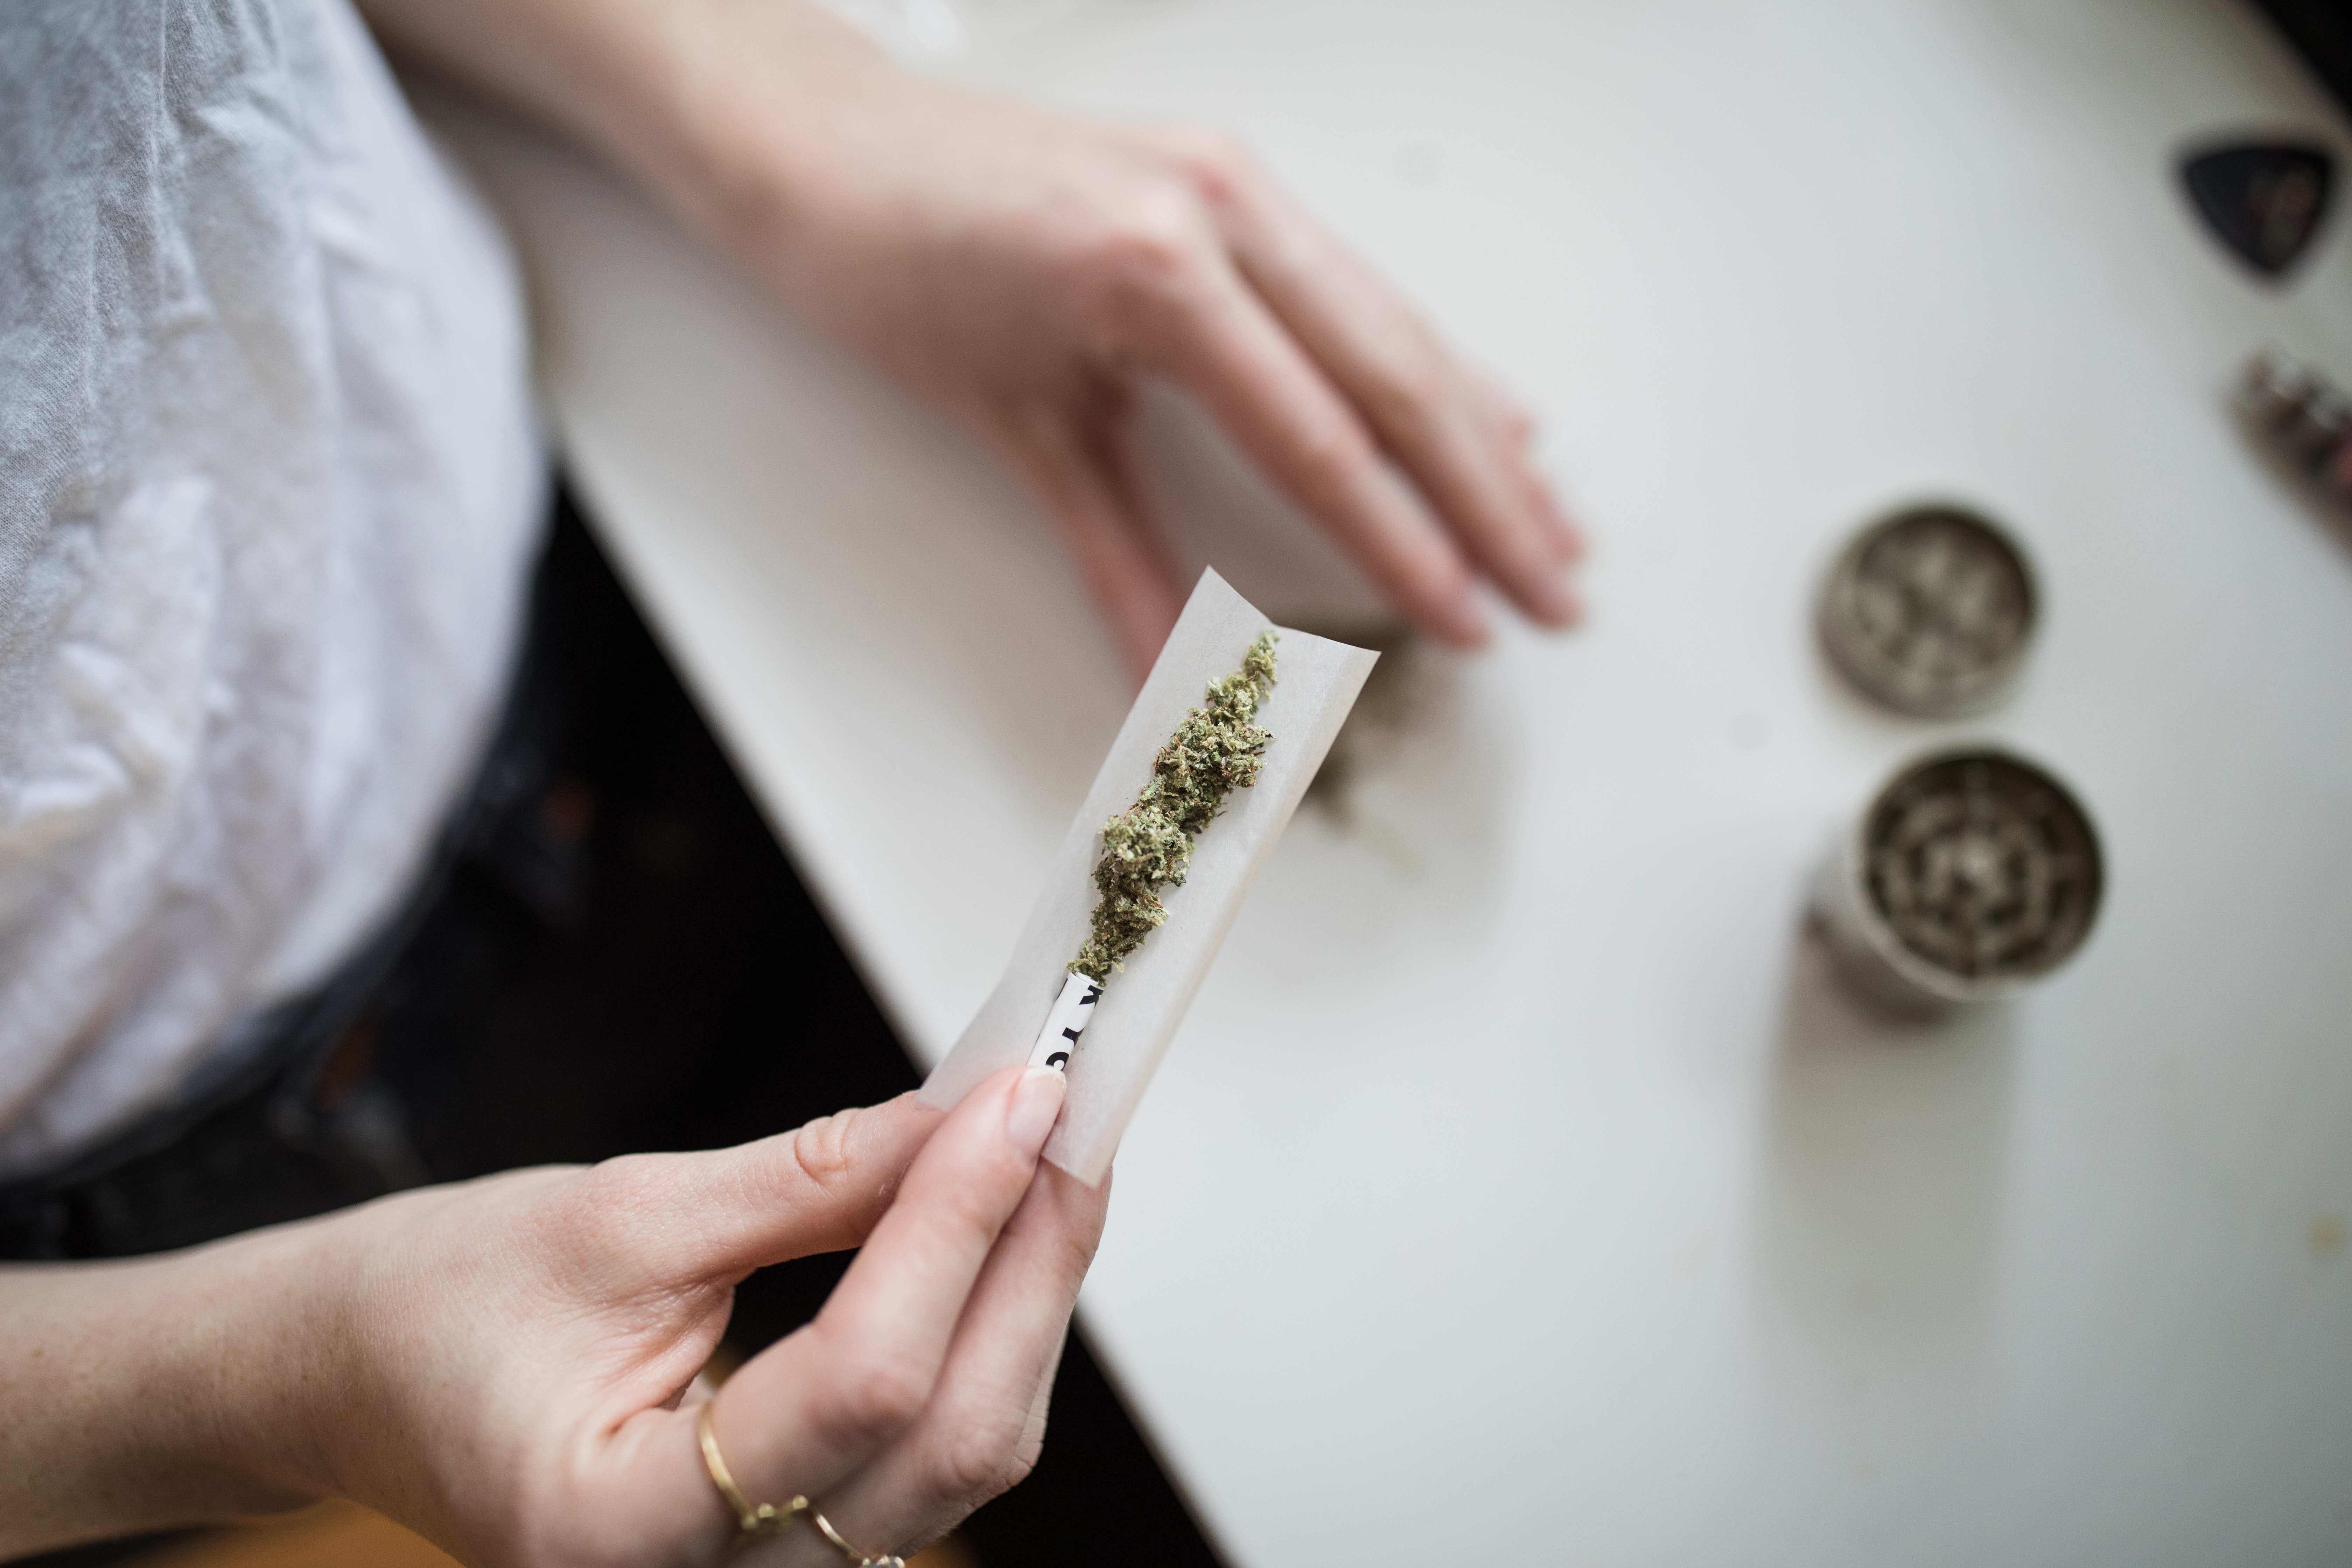 Sex Researchers Found a Positive Effect of Marijuana on Female Orgasms